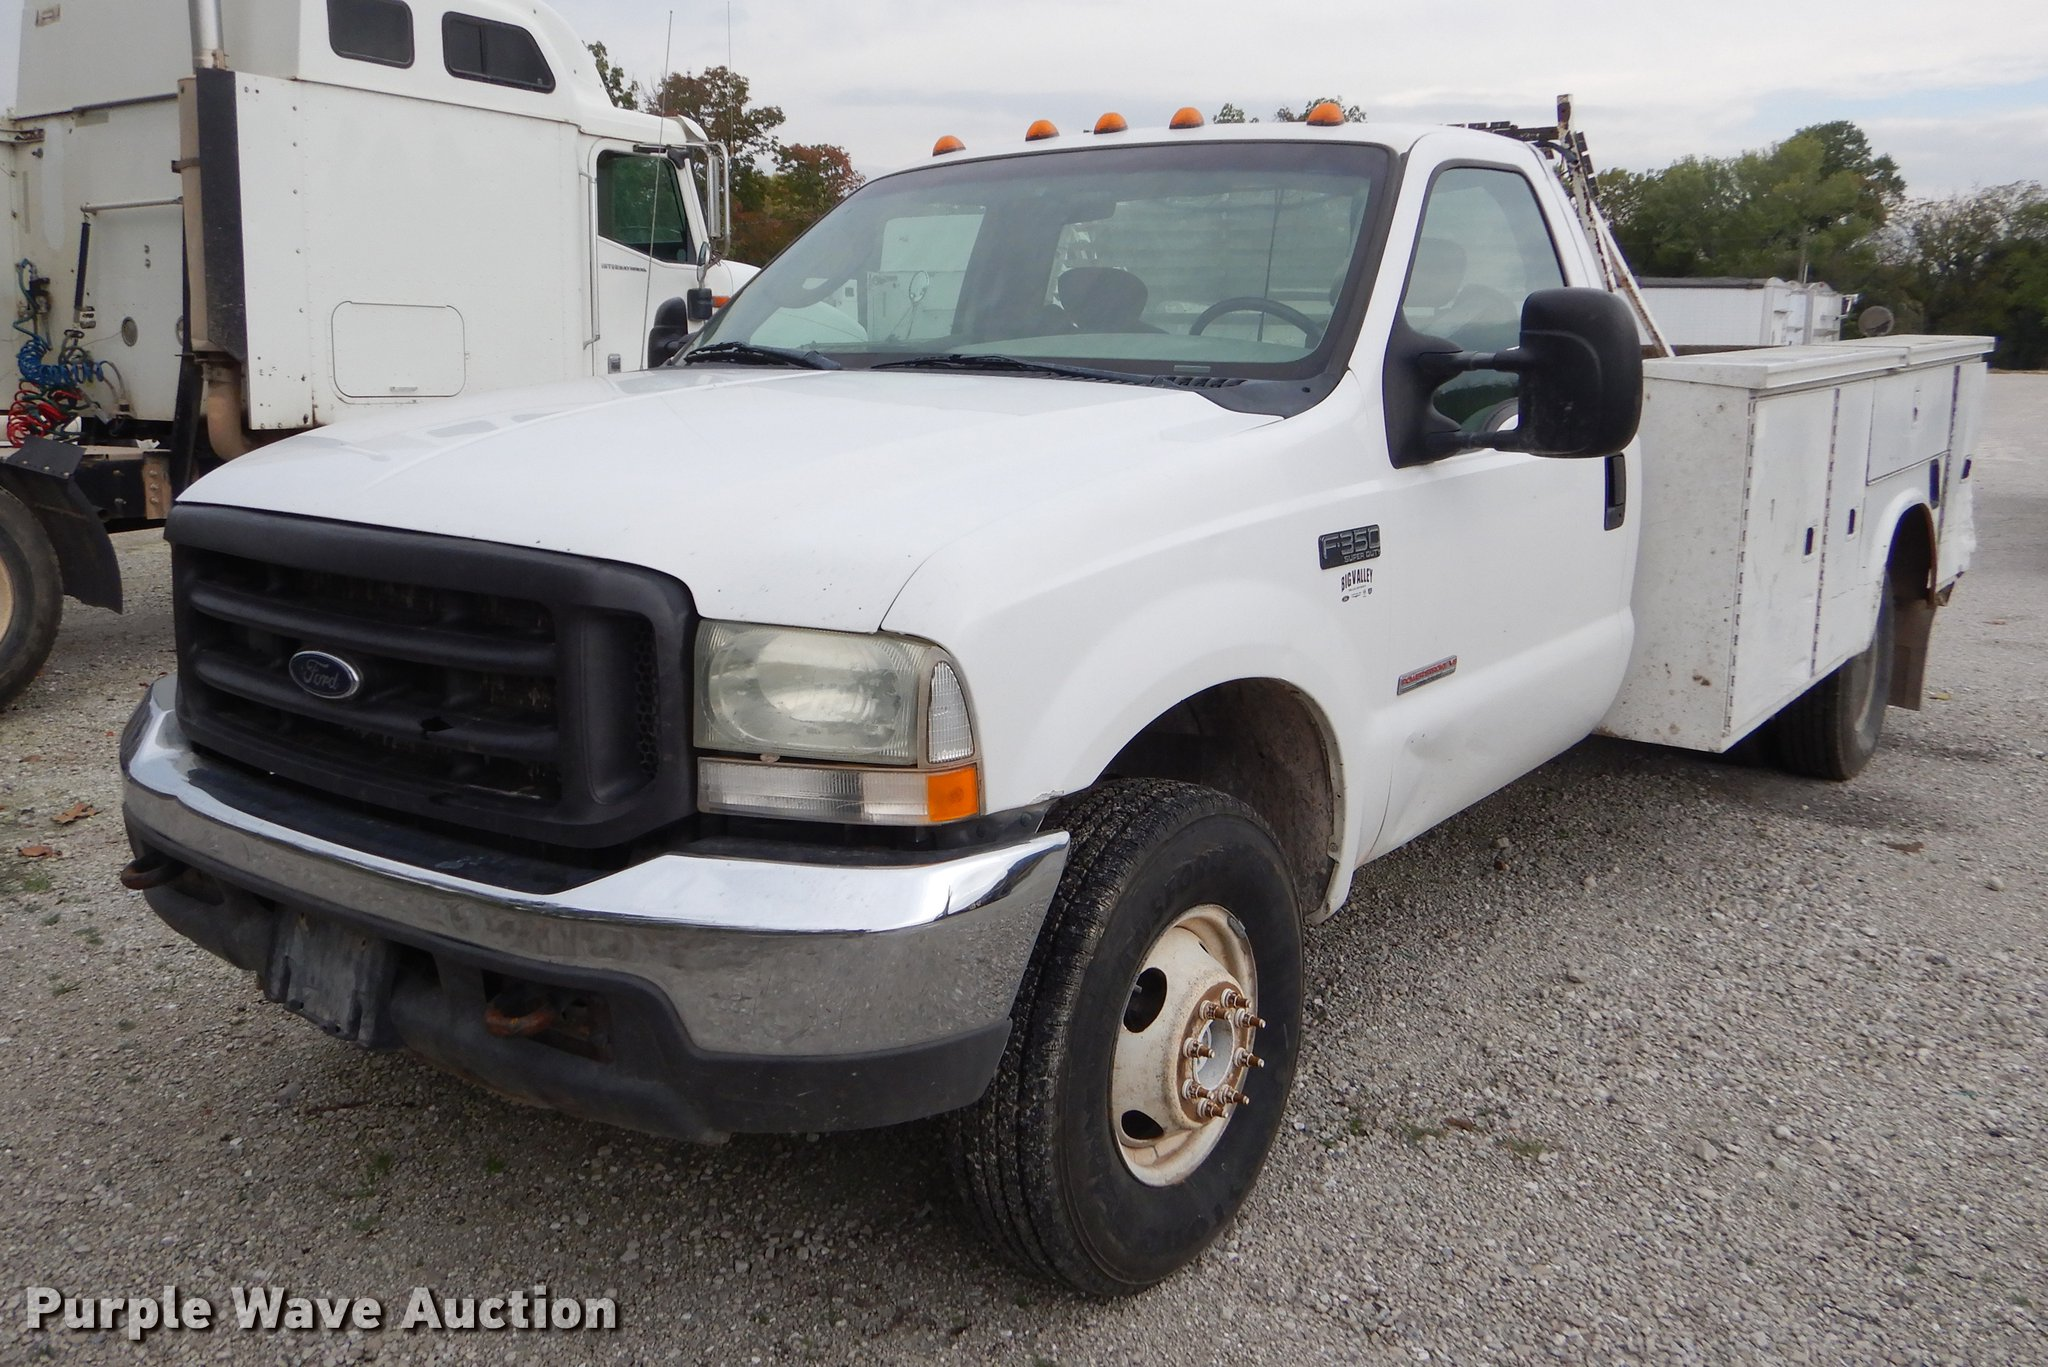 2004 Ford F350 Super Duty Utility Bed Pickup Truck Item Eo Eo9654 Image For